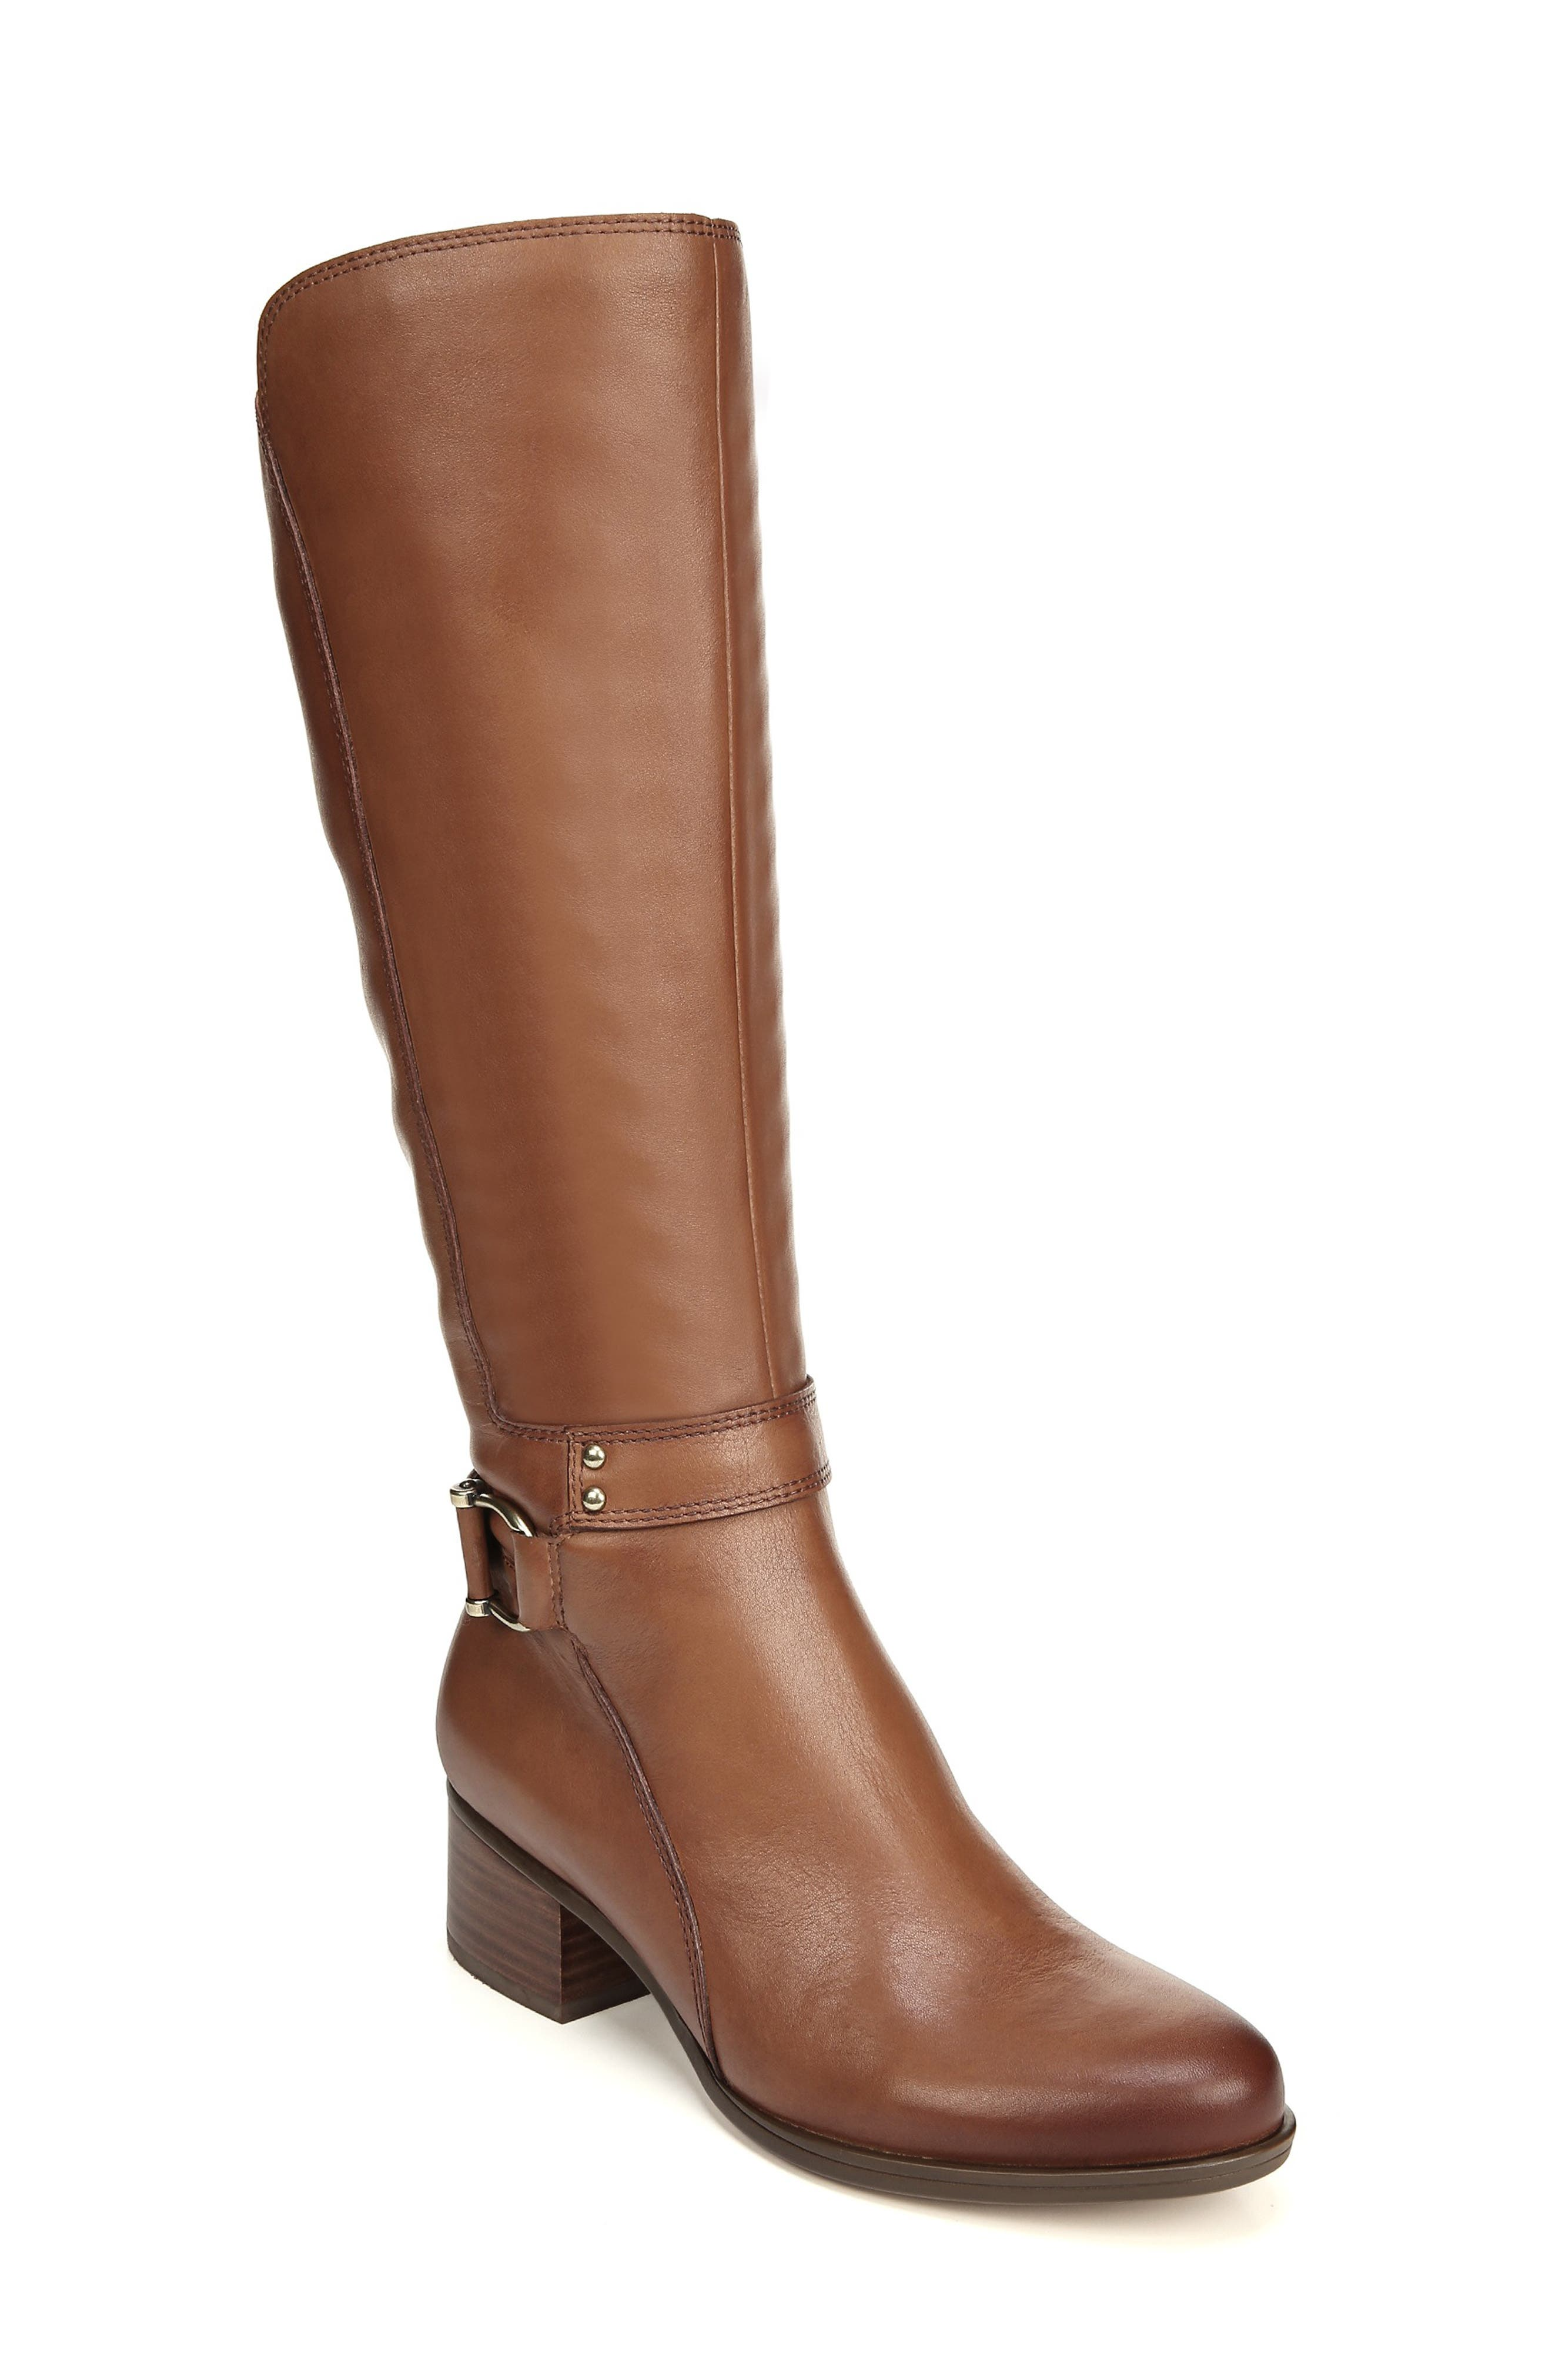 NATURALIZER Dane Knee High Riding Boot, Main, color, MAPLE LEATHER